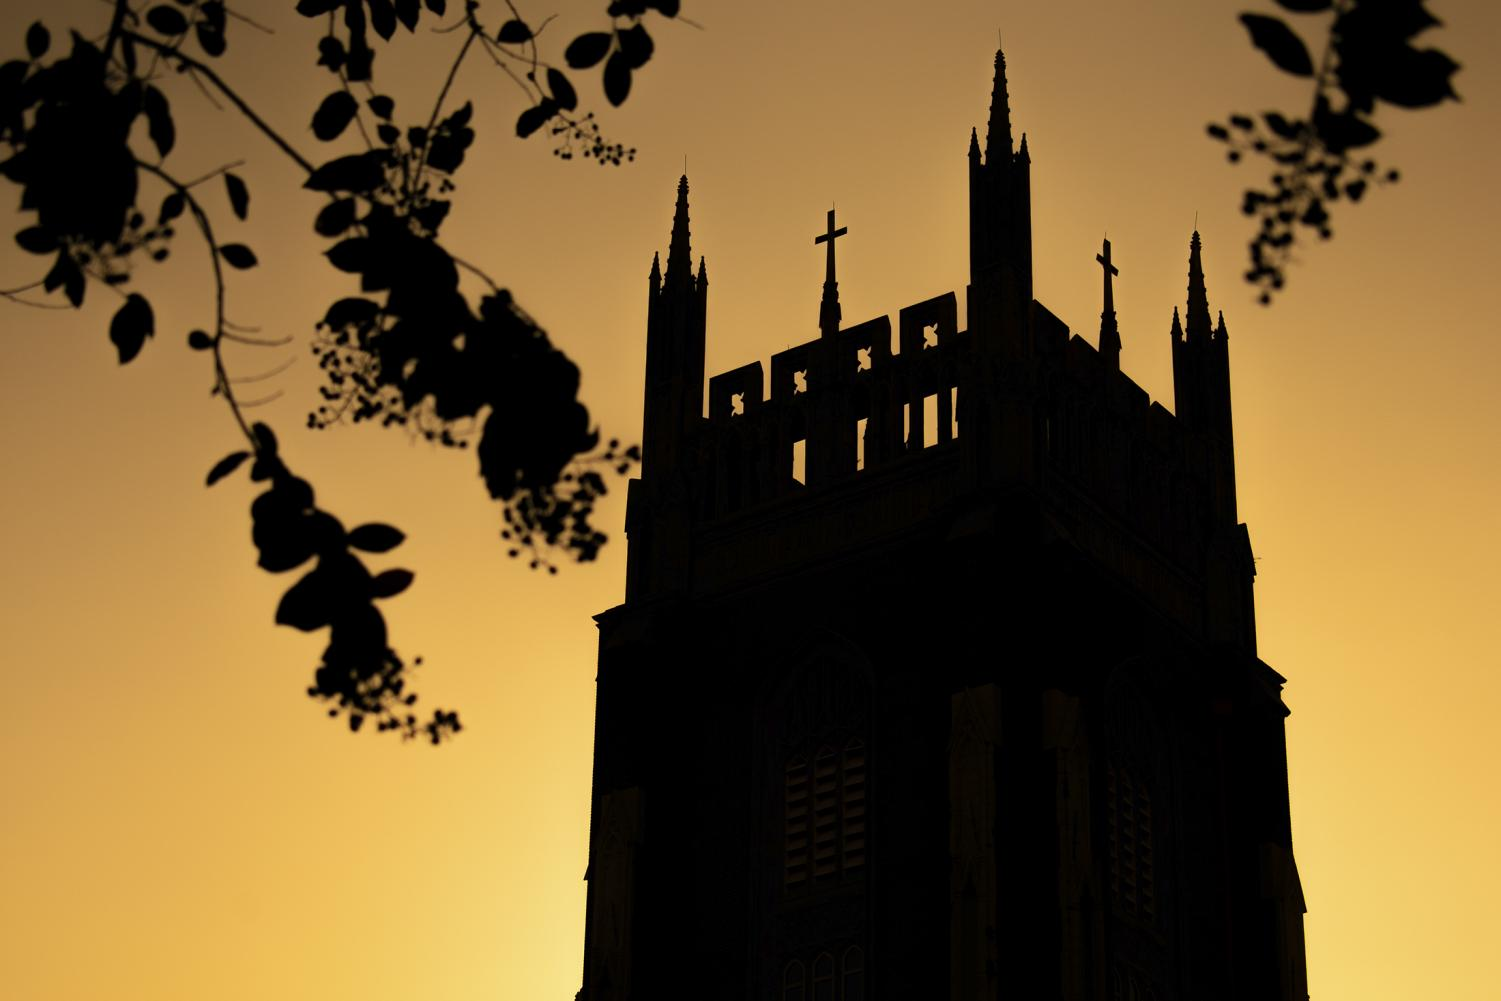 The sun sets on Holy Name of Jesus Church on Sept. 24, 2019. Loyola is undergoing the Mission Priority Examen to reevaluate its commitment to Jesuit values and traditions. Photo credit: Michael Bauer